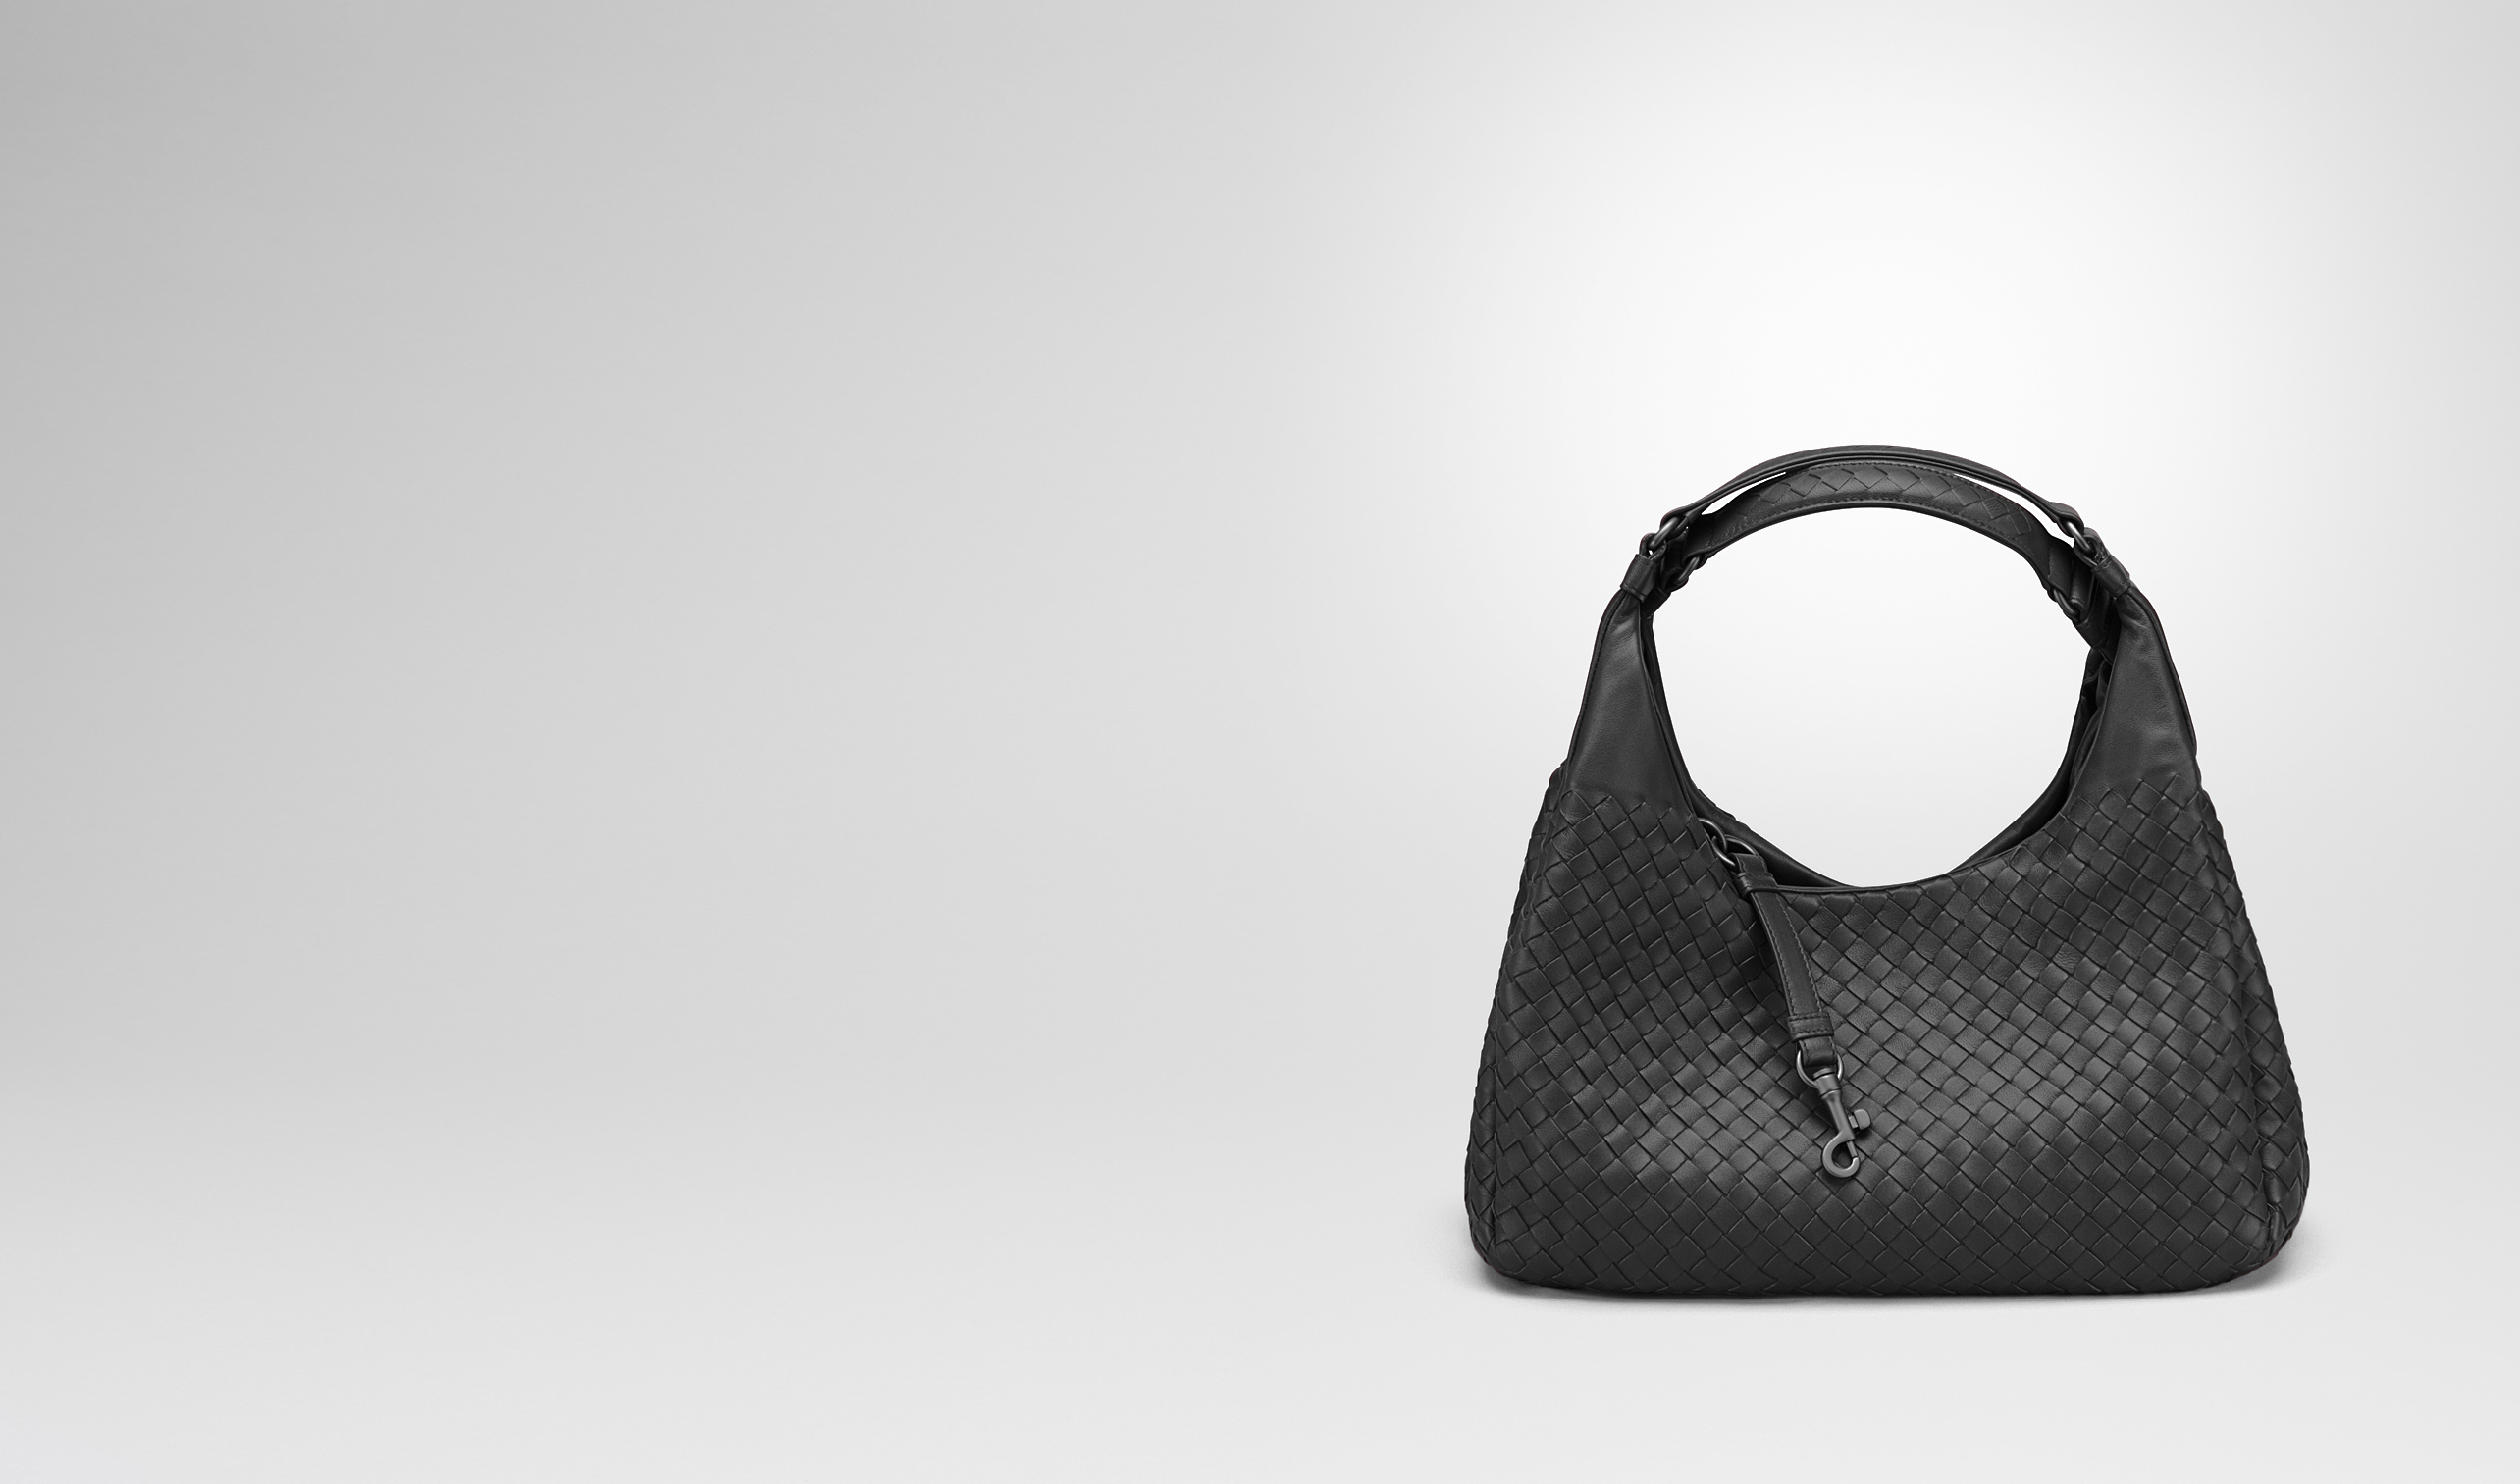 BOTTEGA VENETA Shoulder or hobo bag D MEDIUM CAMPANA BAG IN NERO INTRECCIATO NAPPA pl